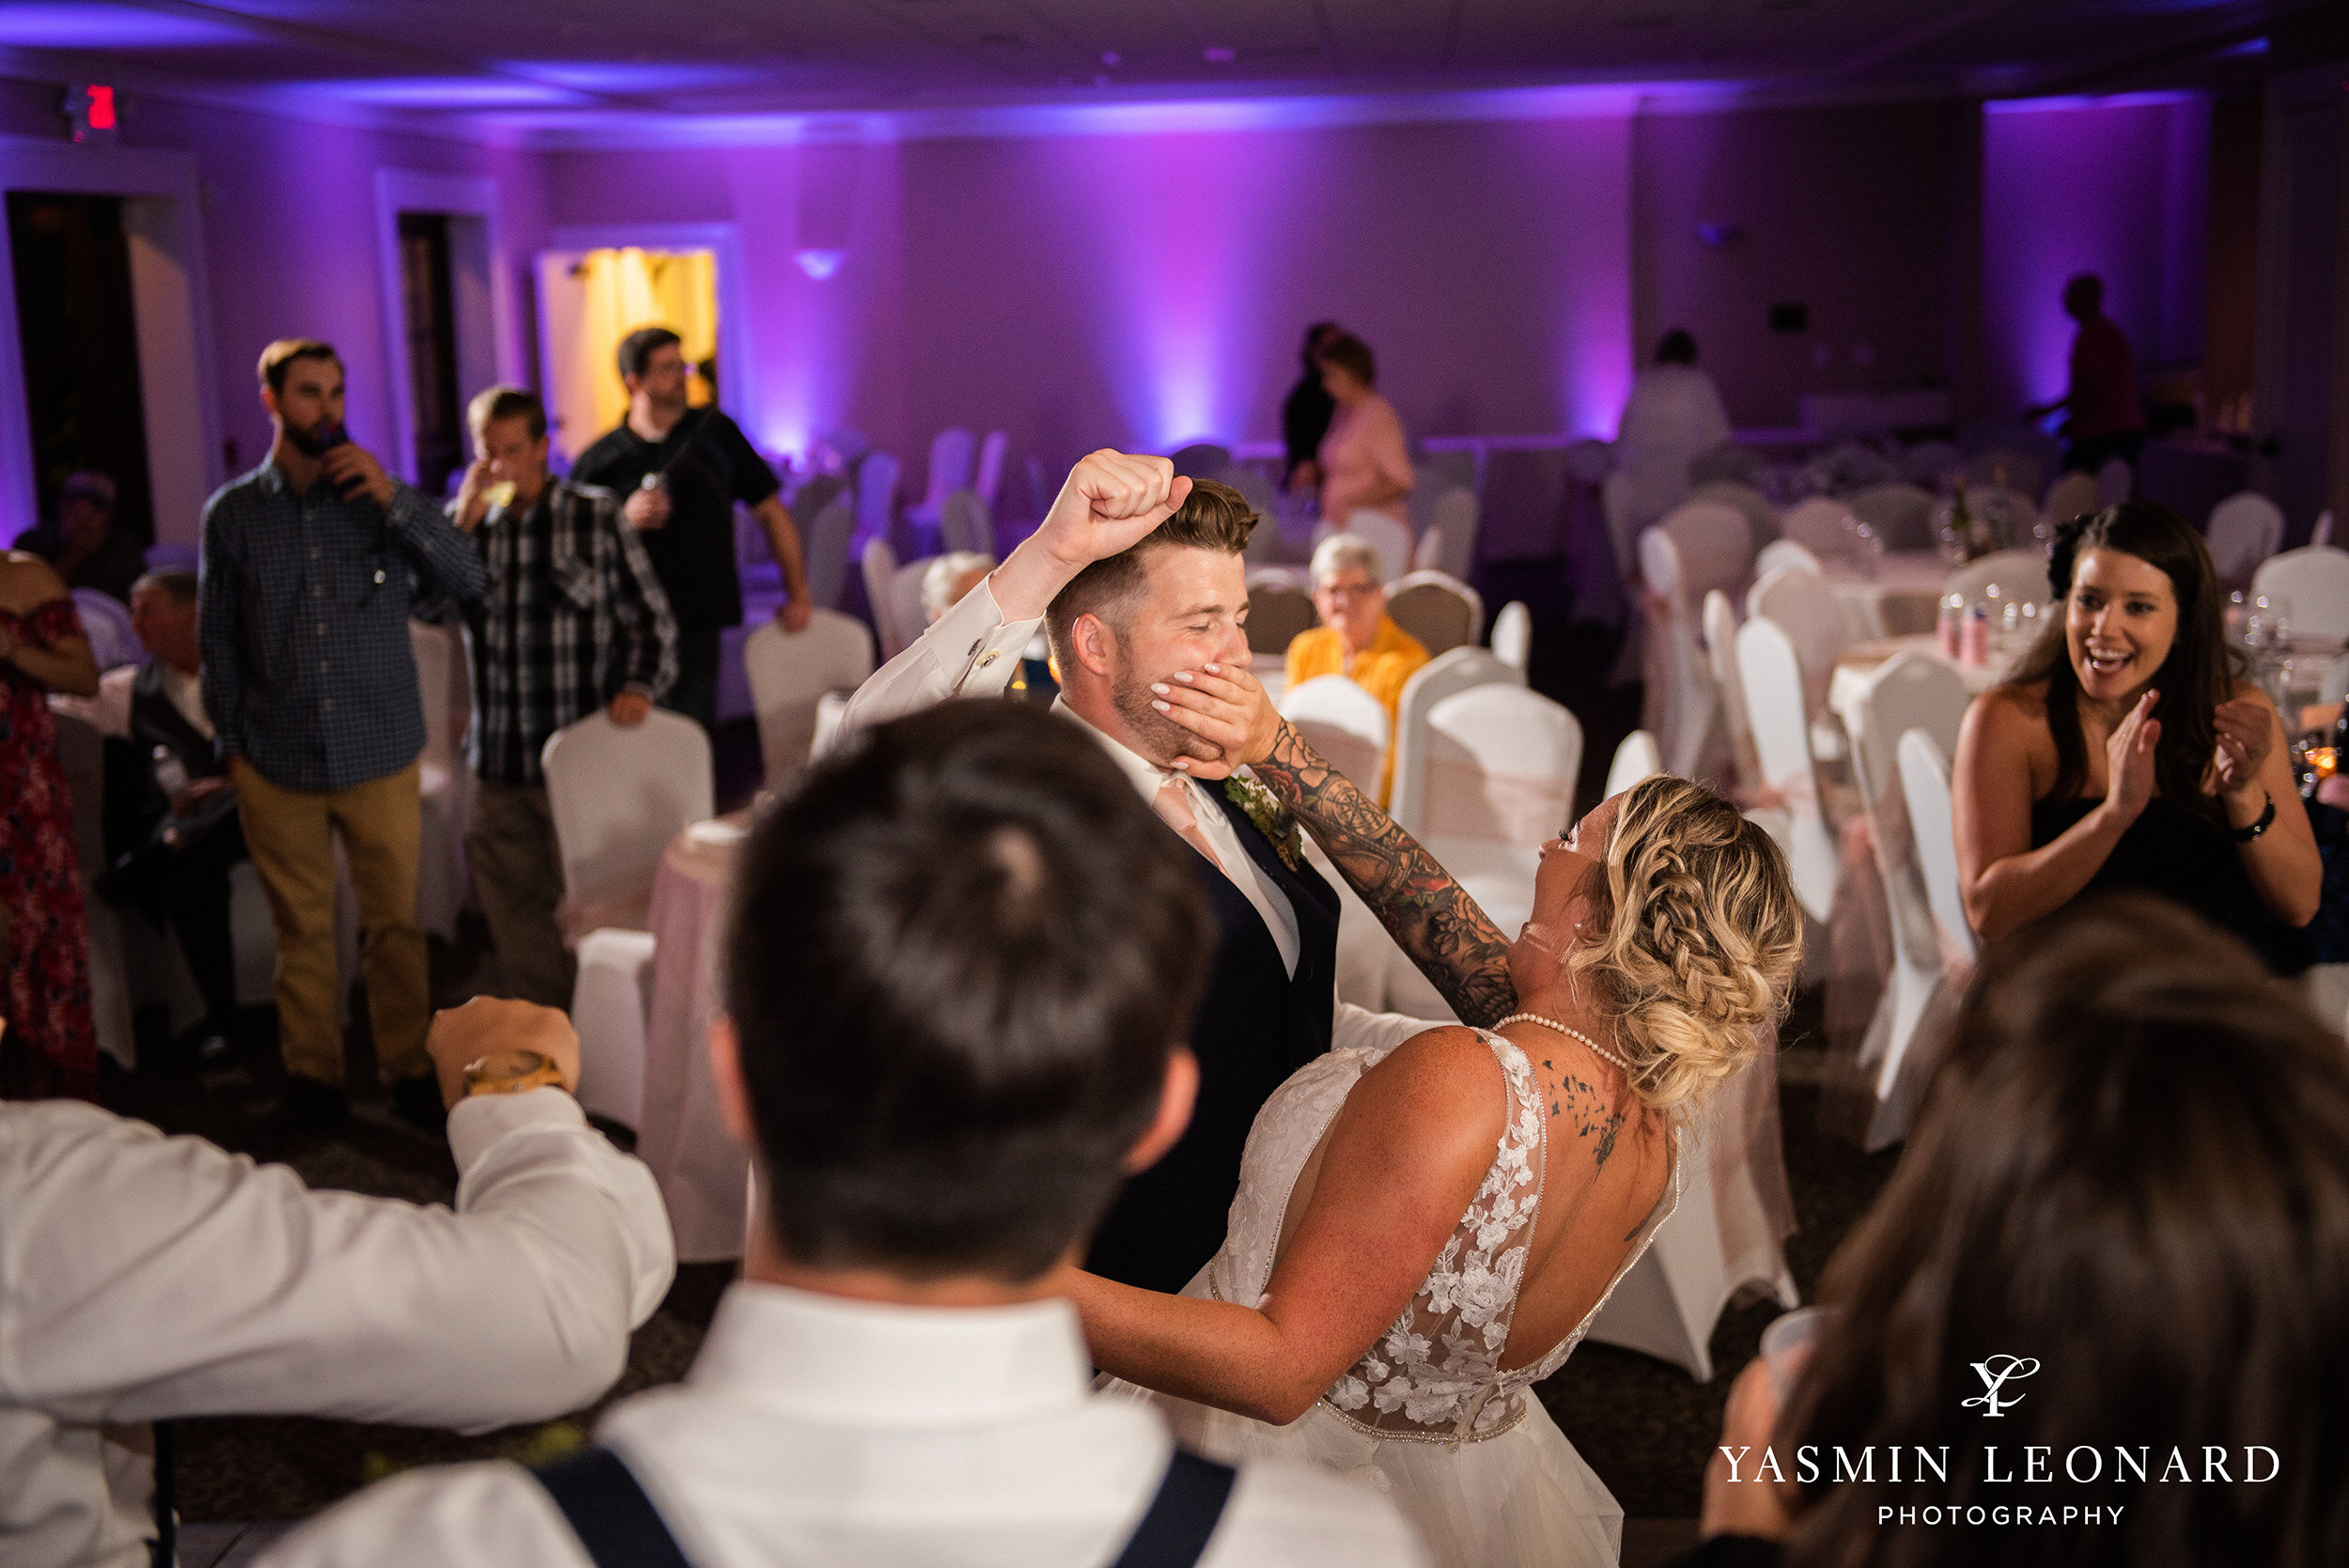 Brittnee and Tyler - Yasmin Leonard Photography-56.jpg